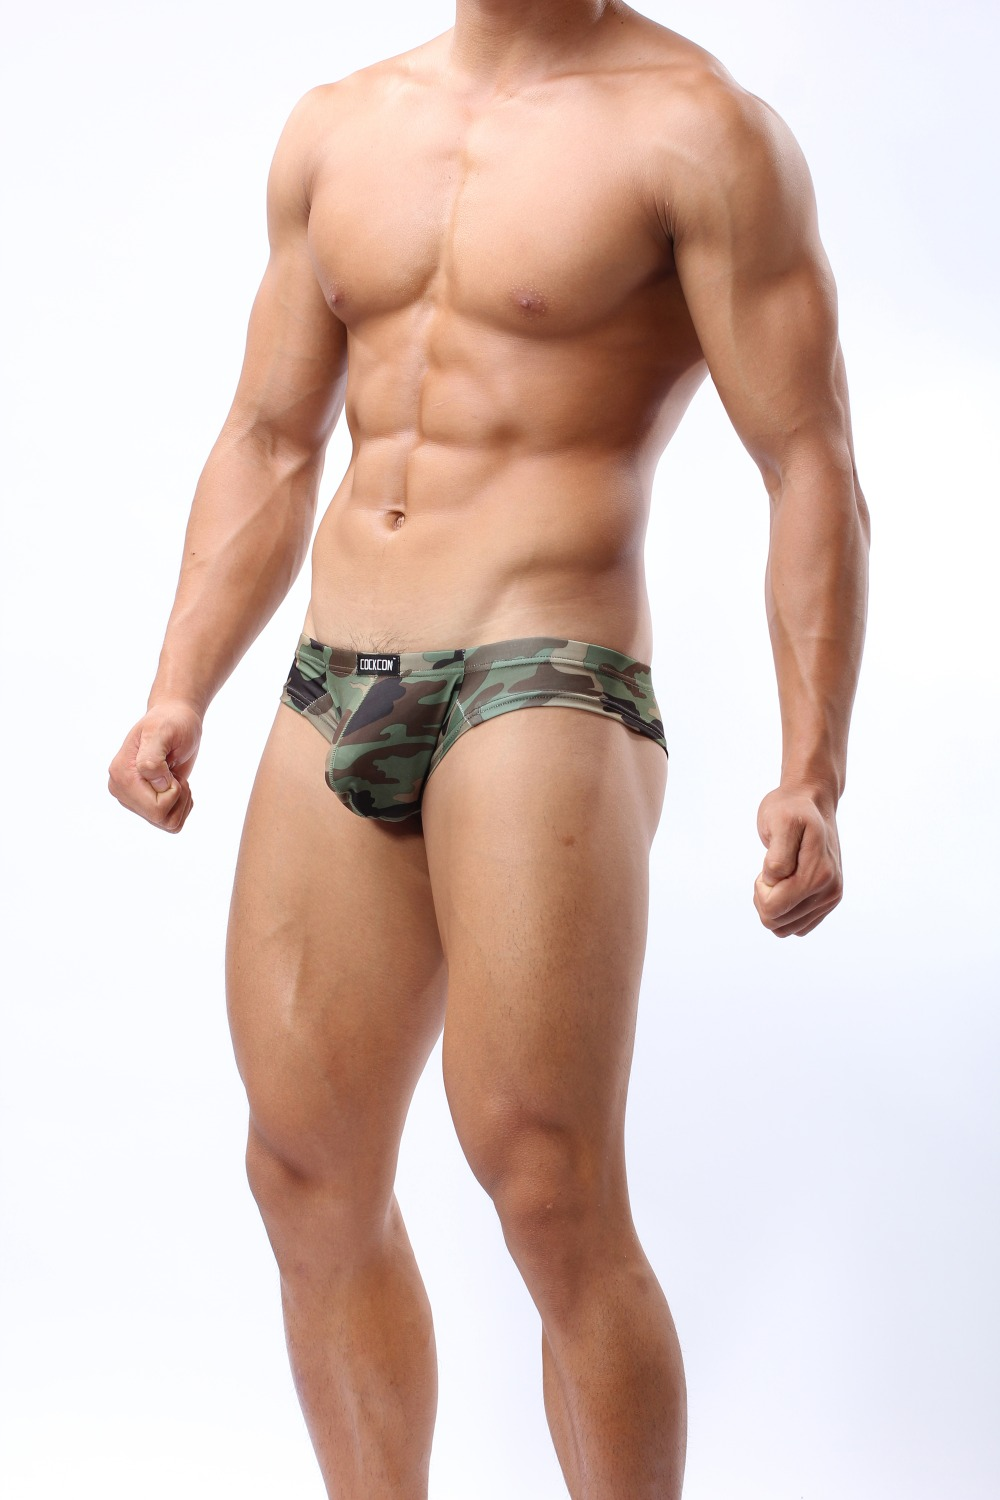 Top Porn Images Muscular gays